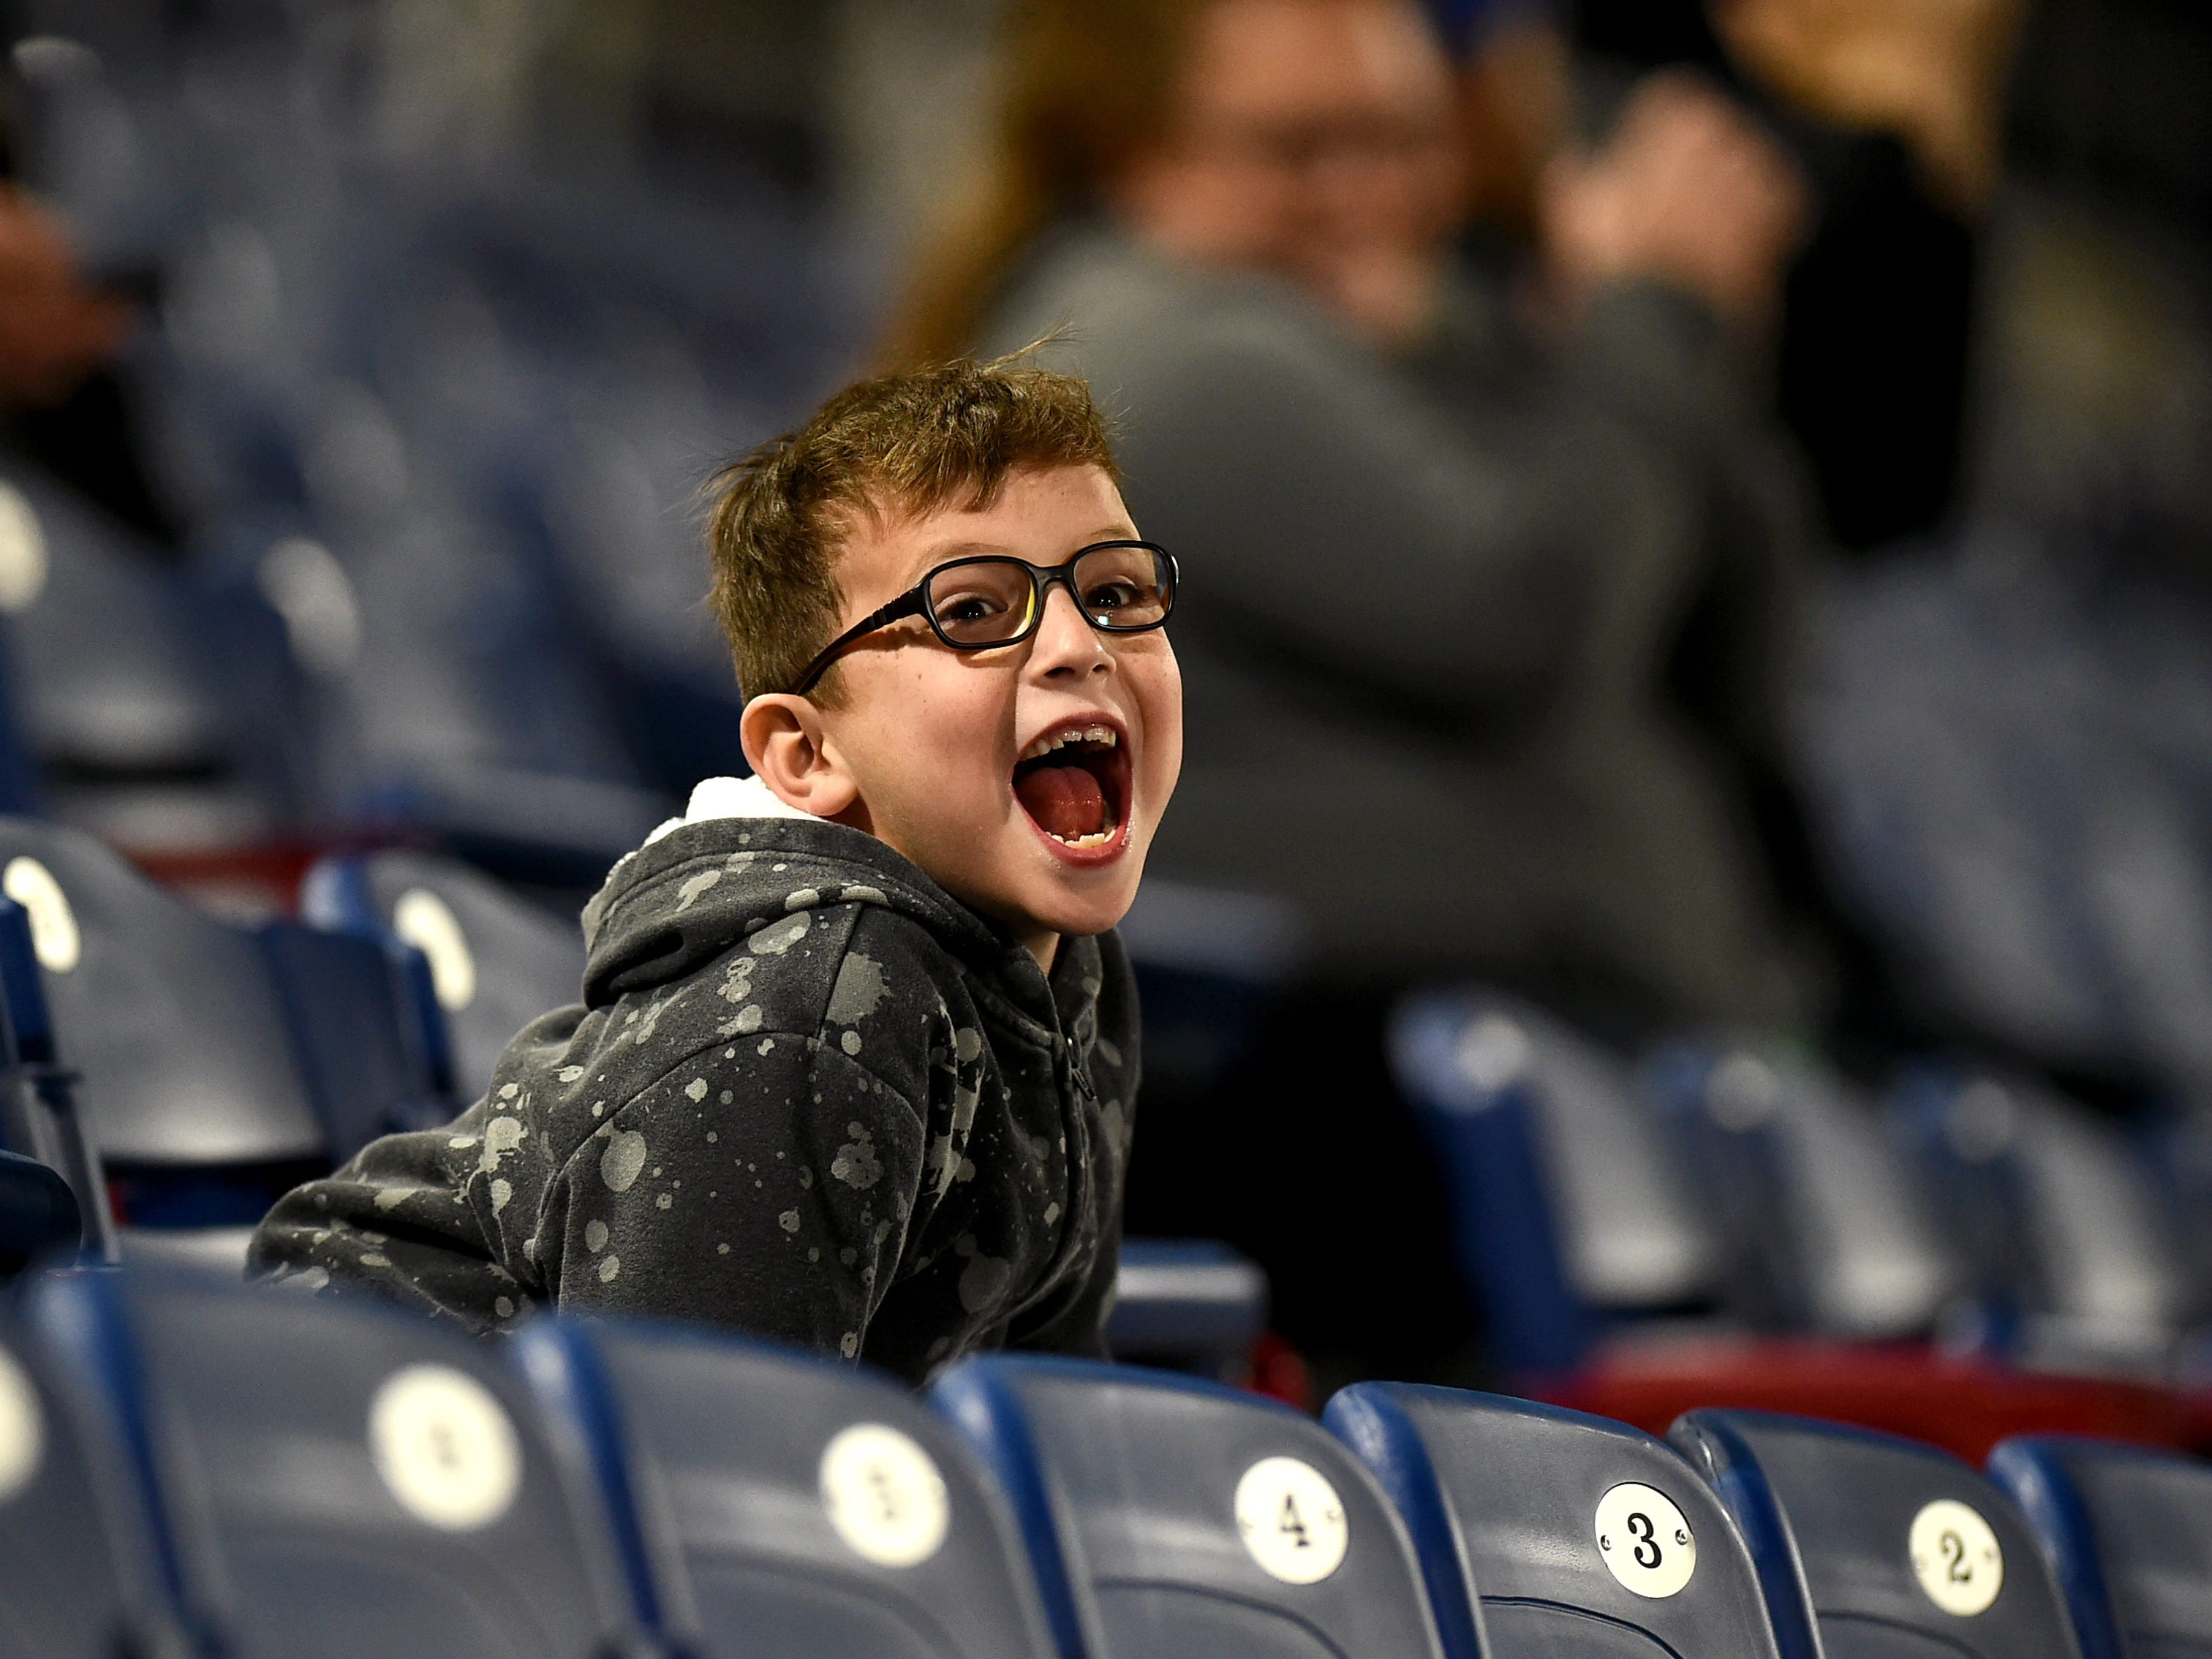 Sheldon O'Reilly, of Georgia, cheers as the Binghamton Rumble Ponies hosted the Akron RubberDucks at NYSEG Stadium, April 29, 2019.